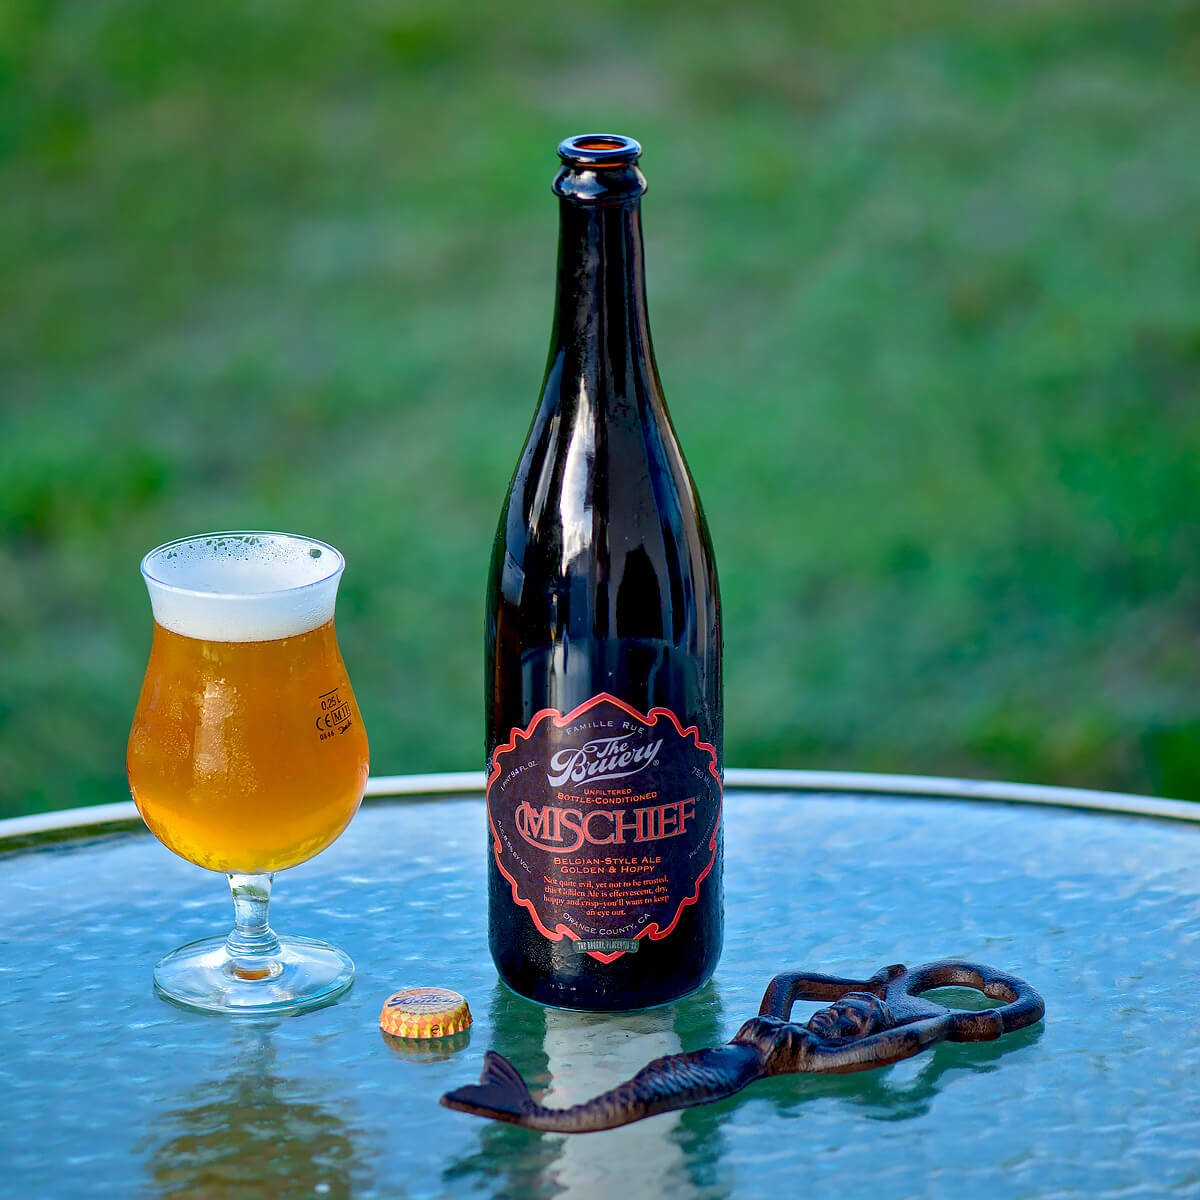 Mischief, a Belgian-style Golden Ale by The Bruery